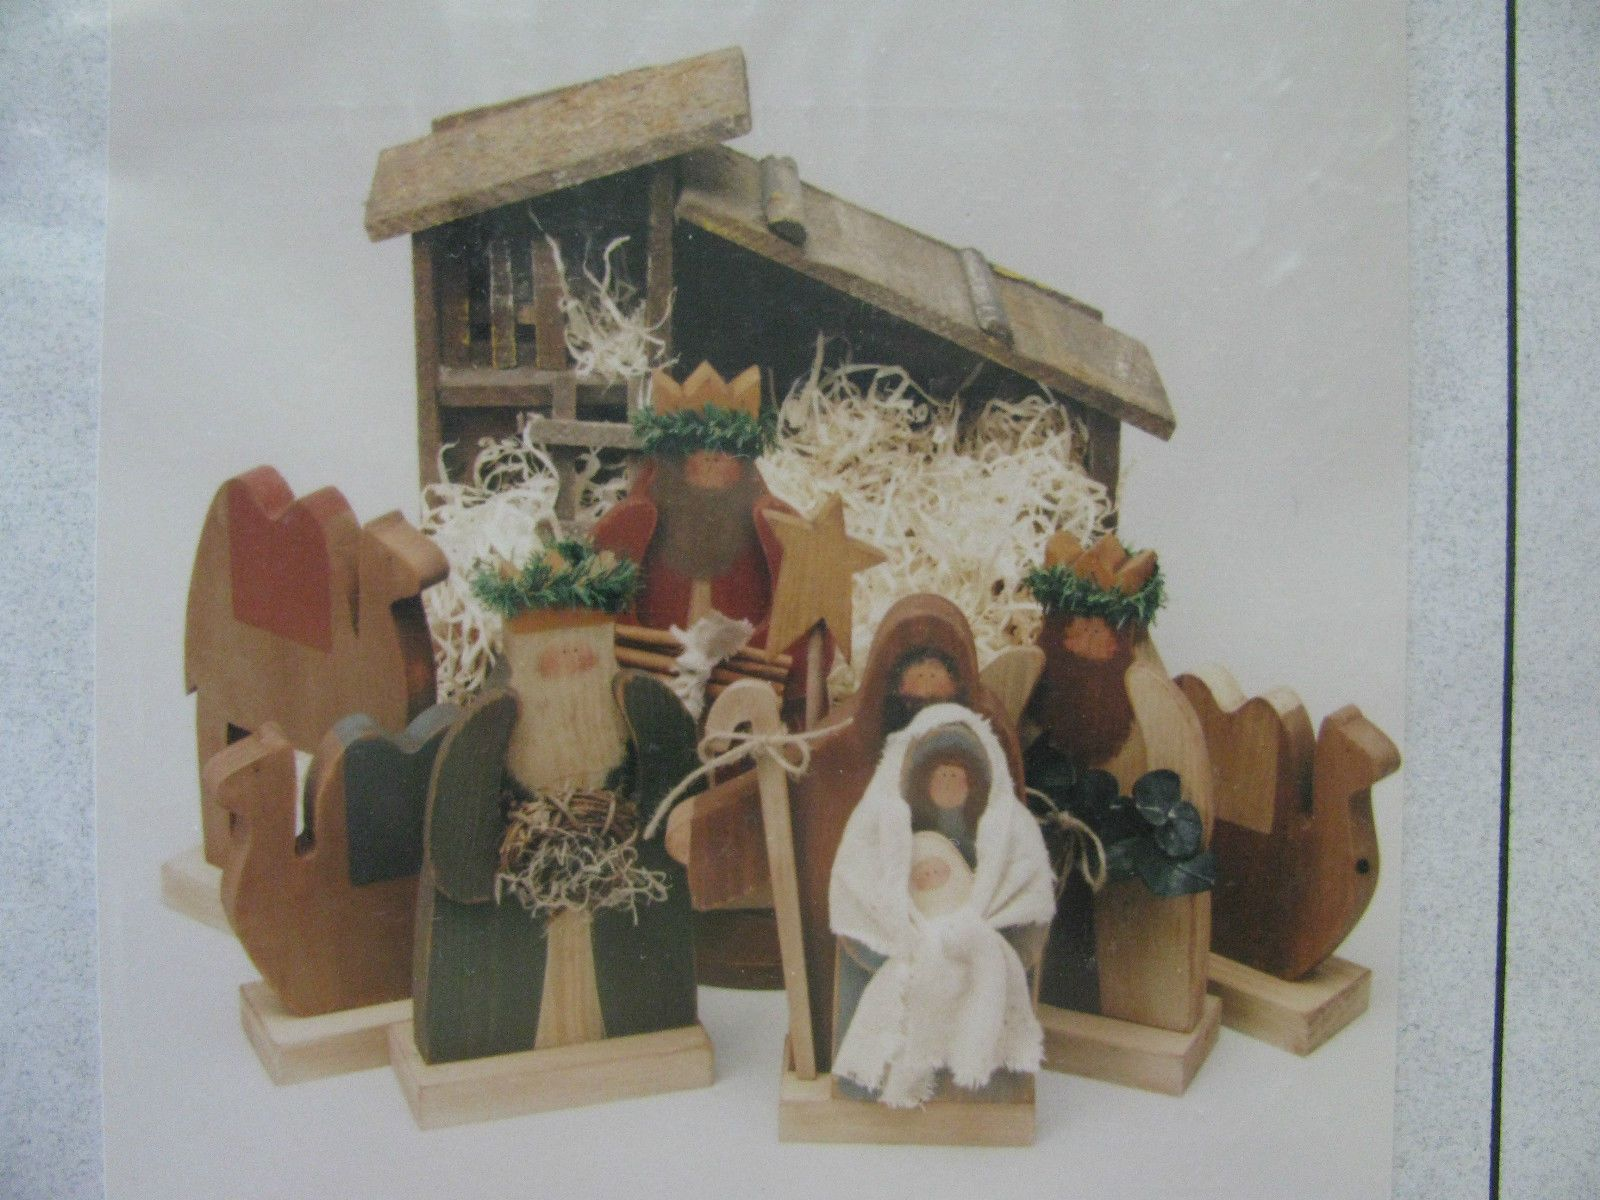 the stenciled duck nativity manger set wood tole painting craft